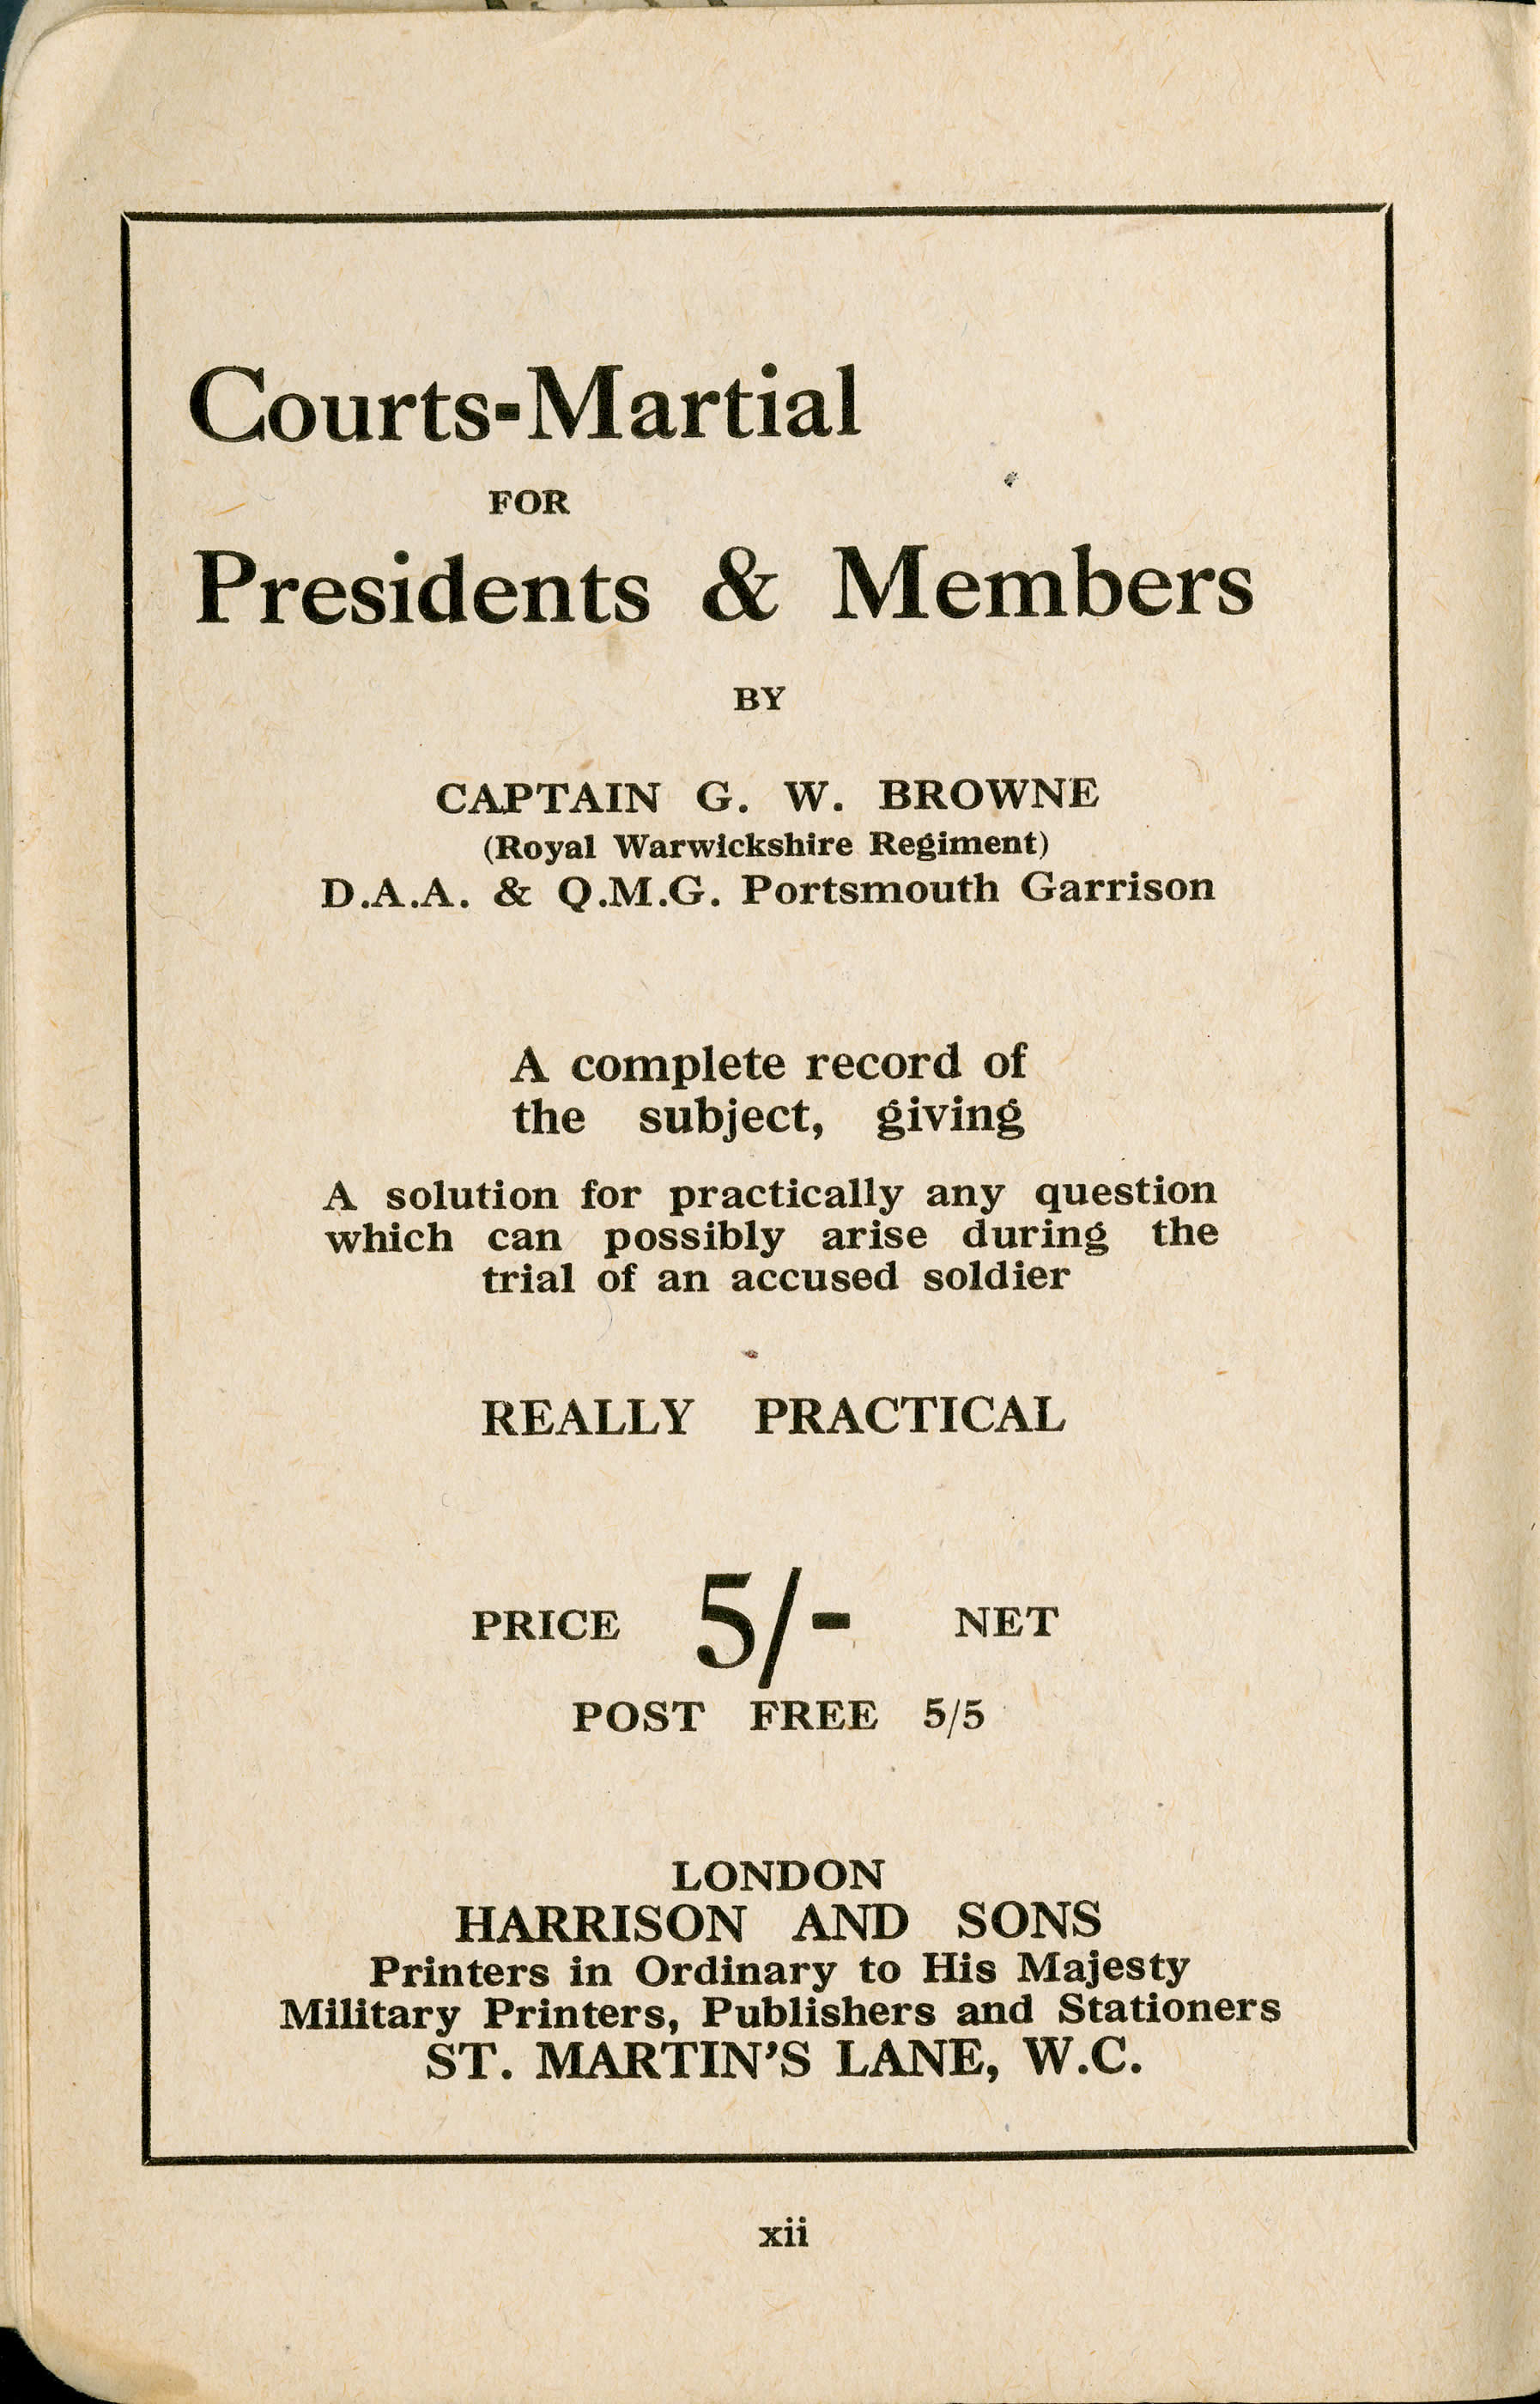 Courts-Martial for Presidents & Members